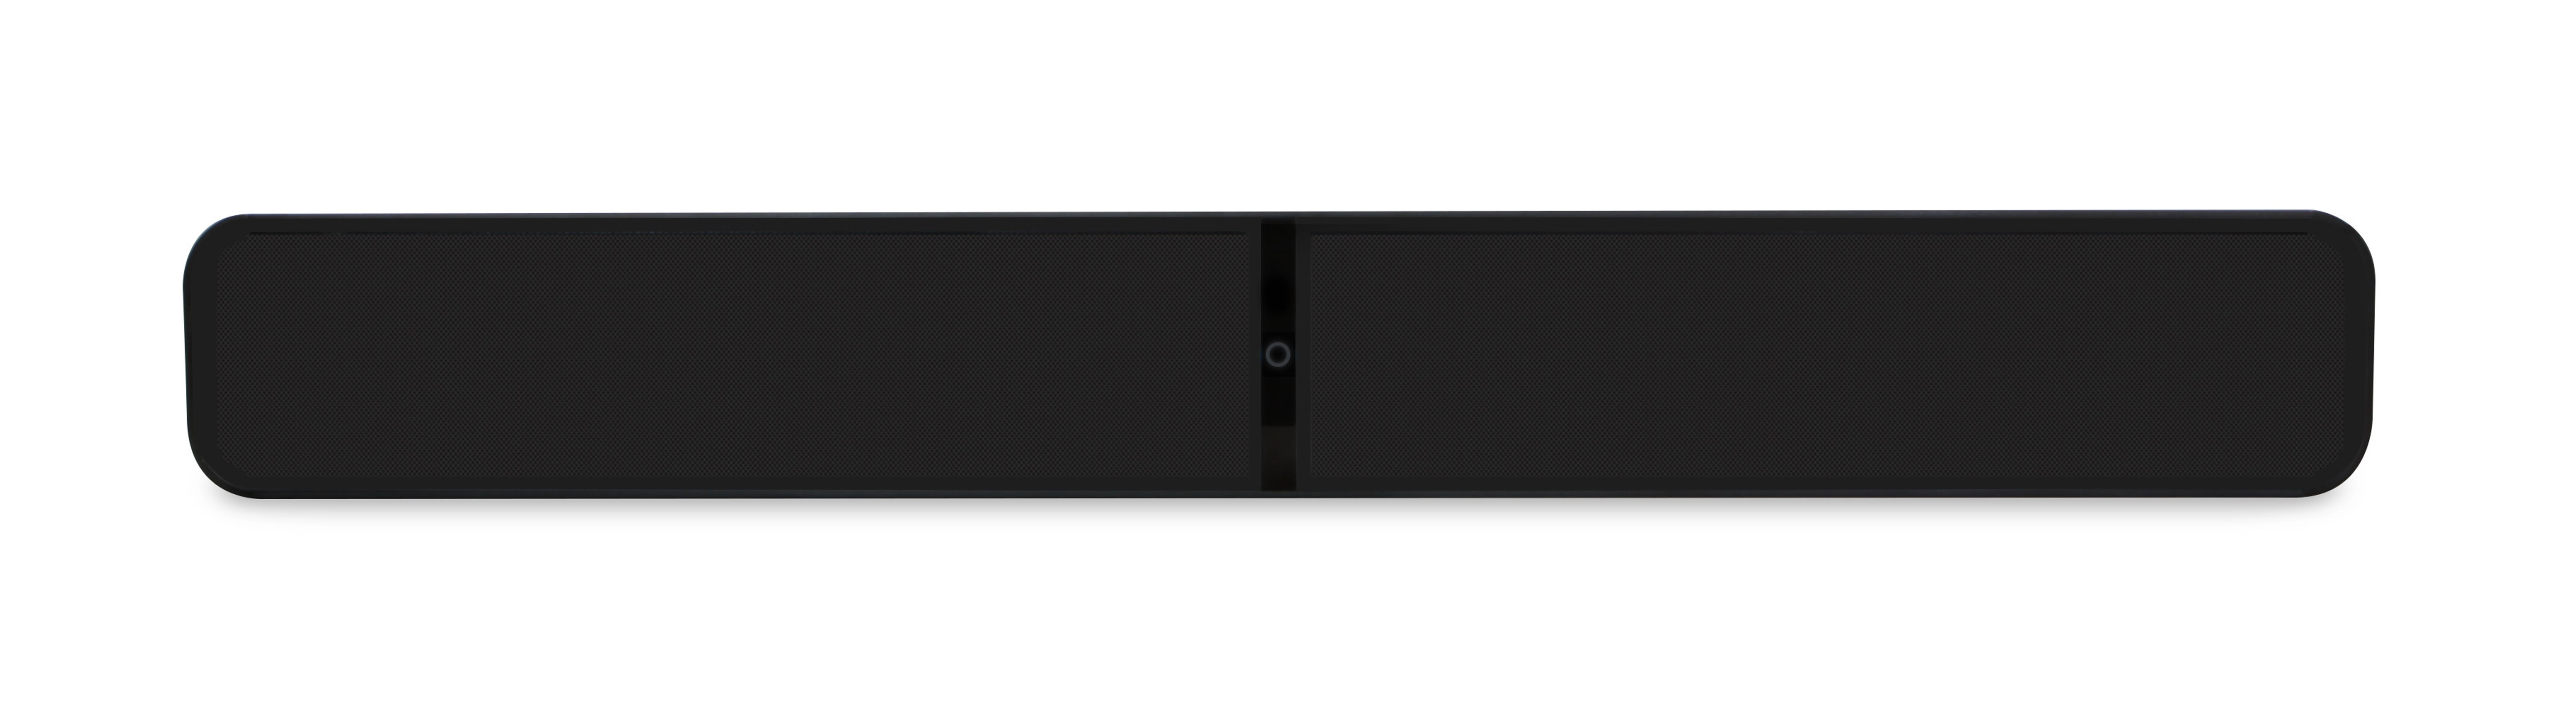 Foto van Bluesound PULSE SOUNDBAR2i Soundbar